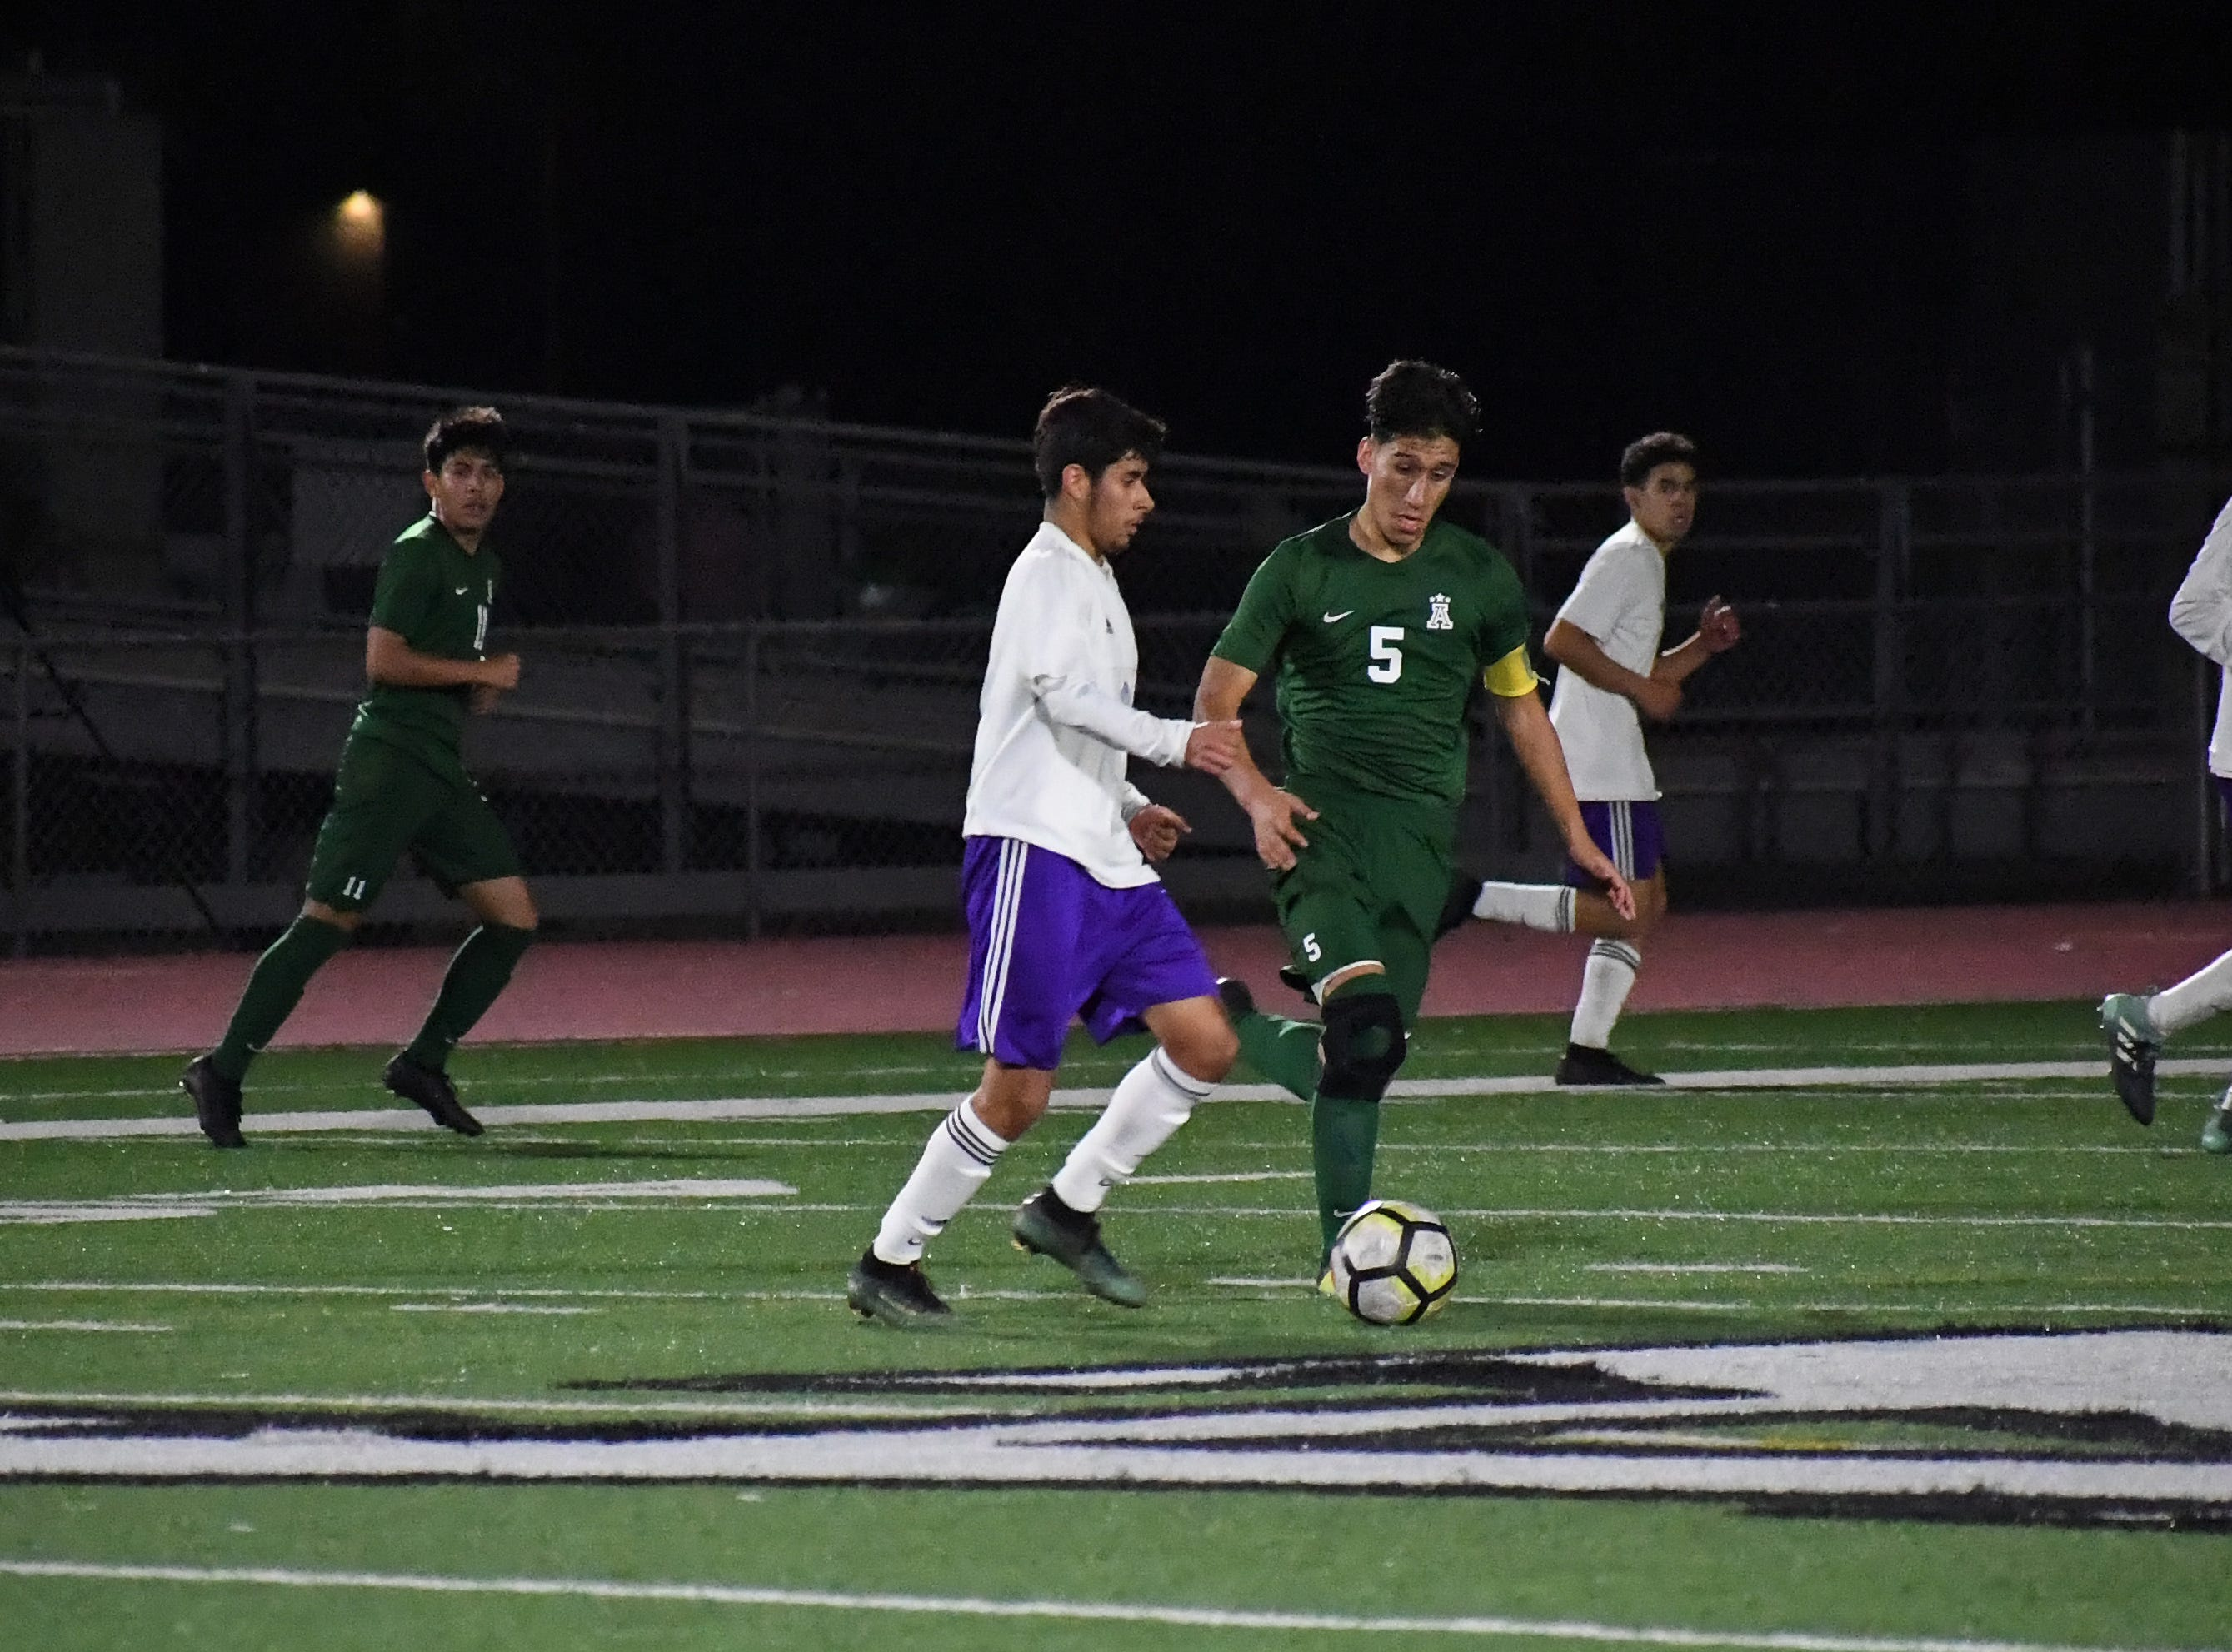 Alisal midfielder Osvaldo Avalos (5) fights for possession near midfield.